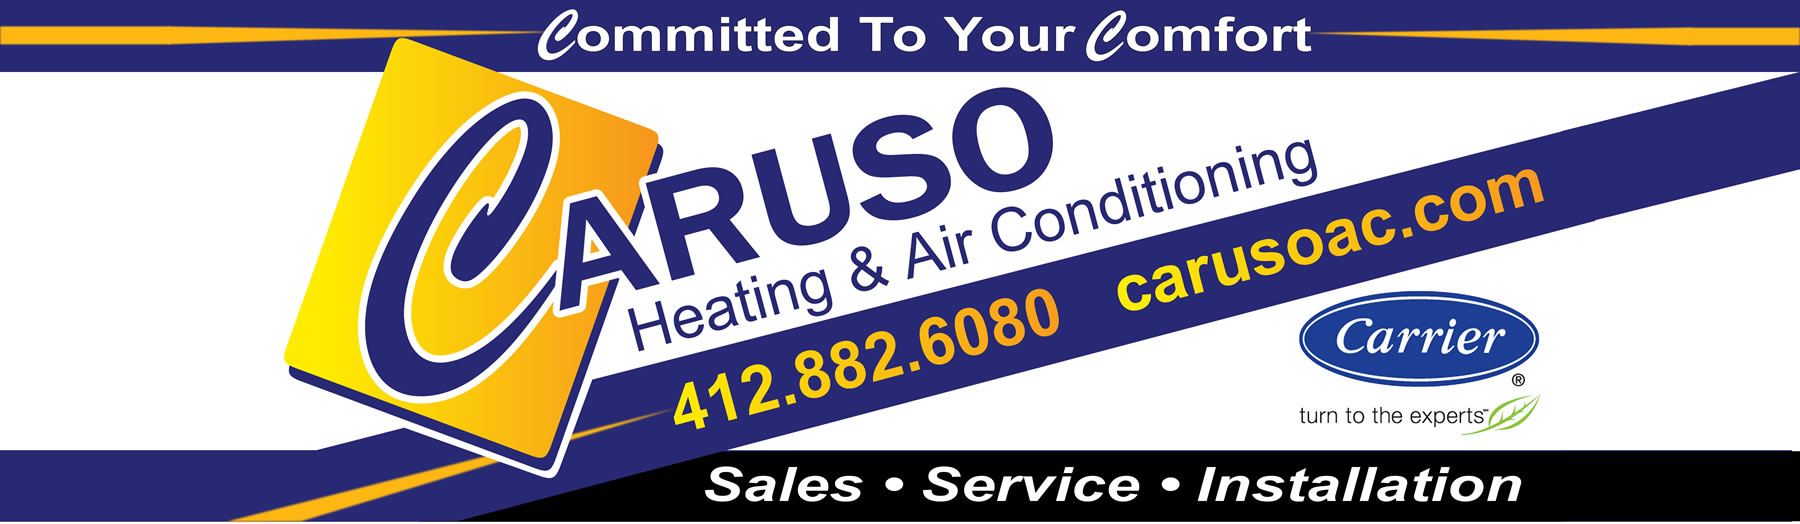 Caruso Heating and Air Conditioning